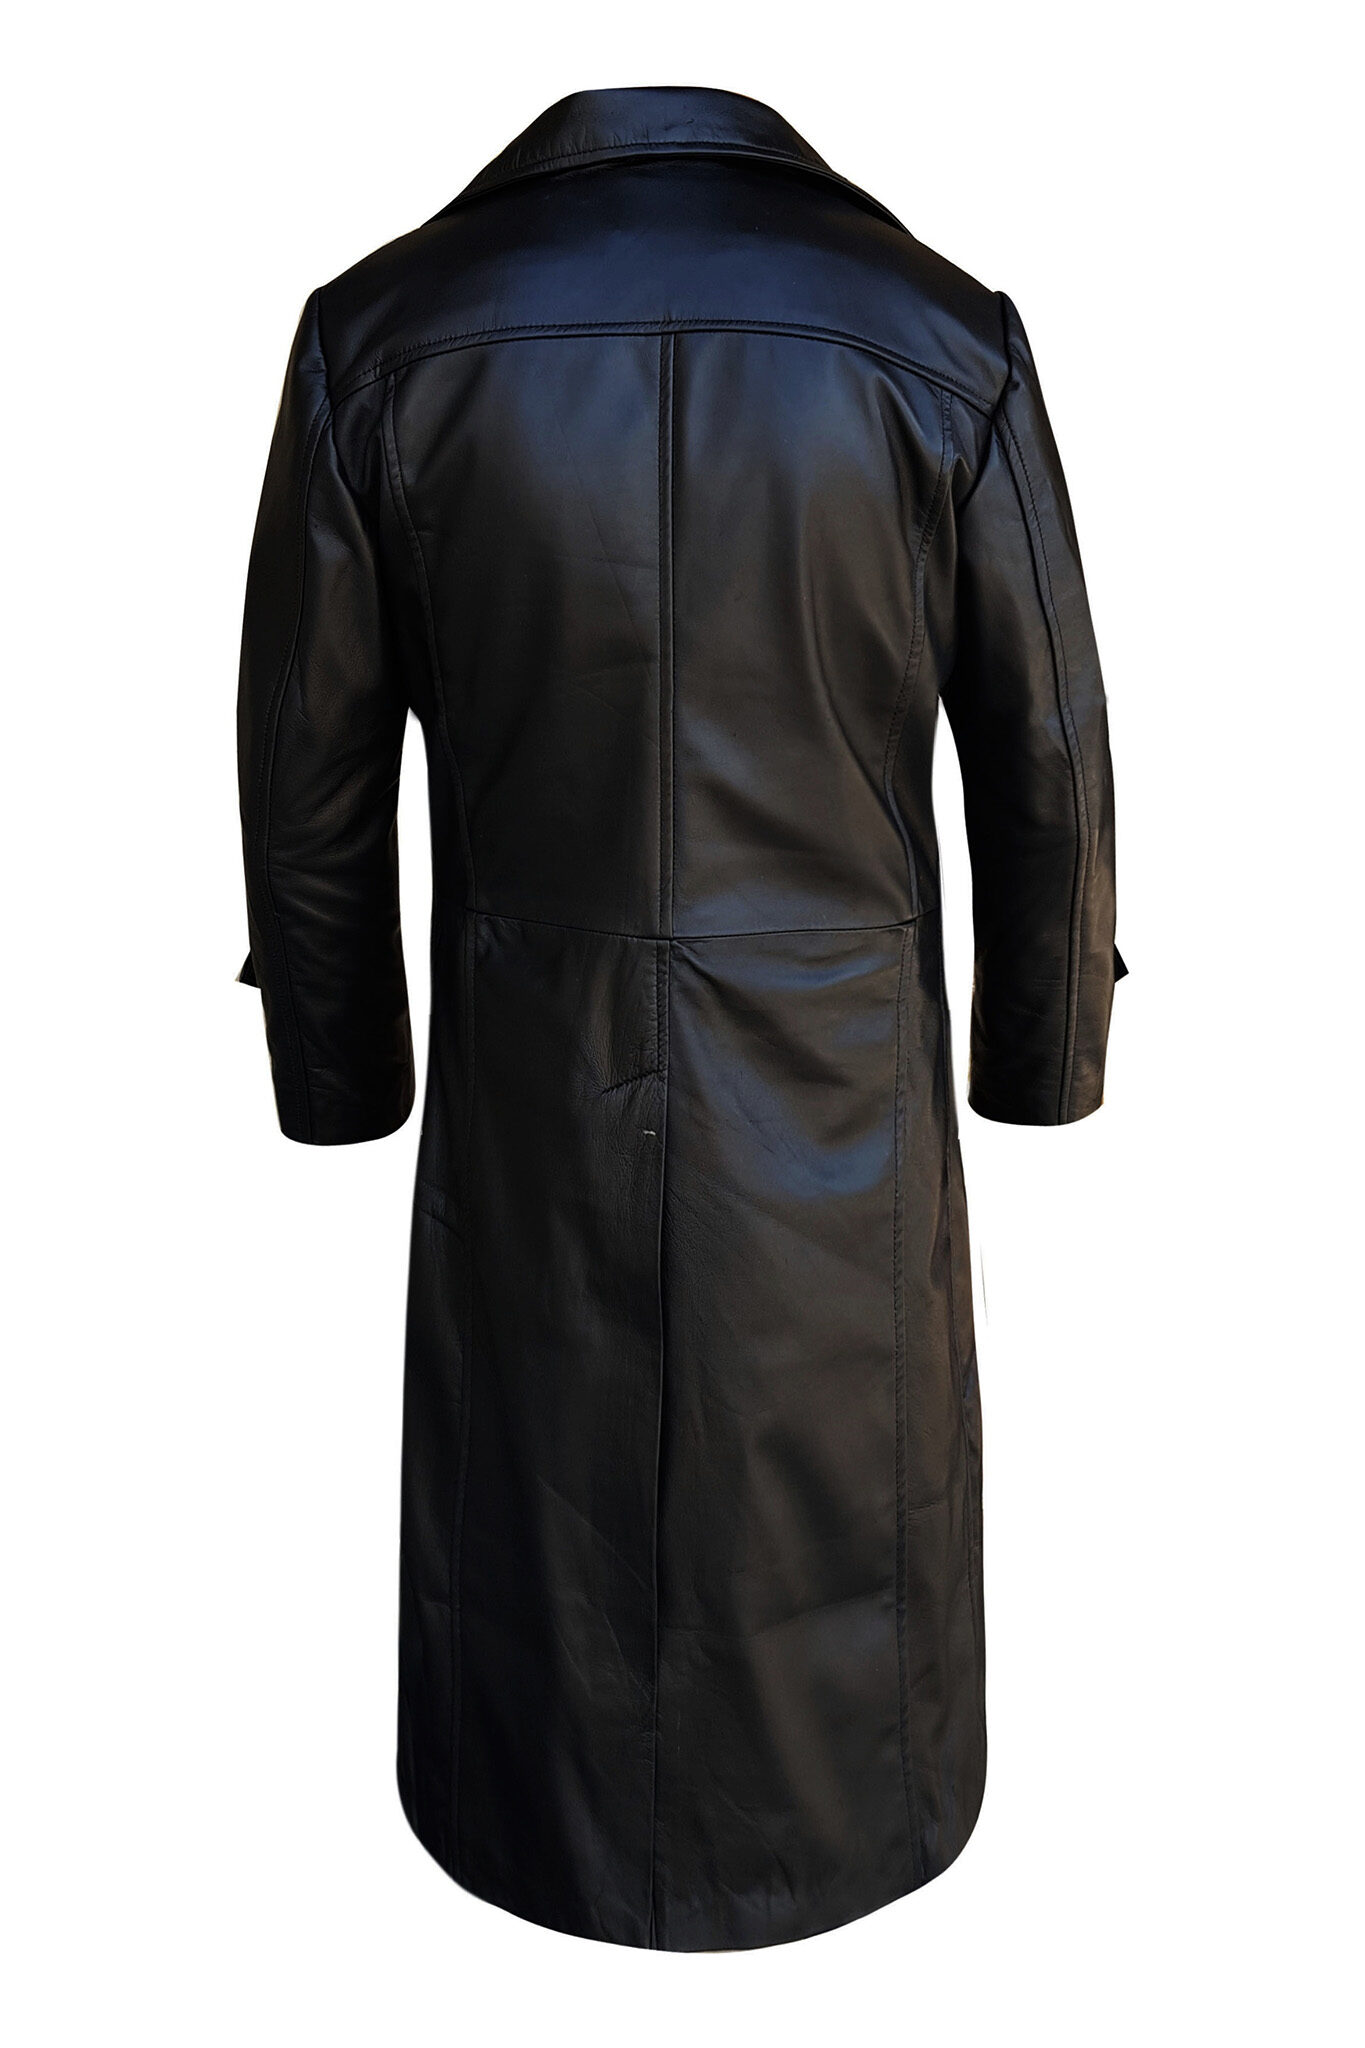 Mens Leather Trench Coat for Men Long Jacket Vintage Distressed Black Coat